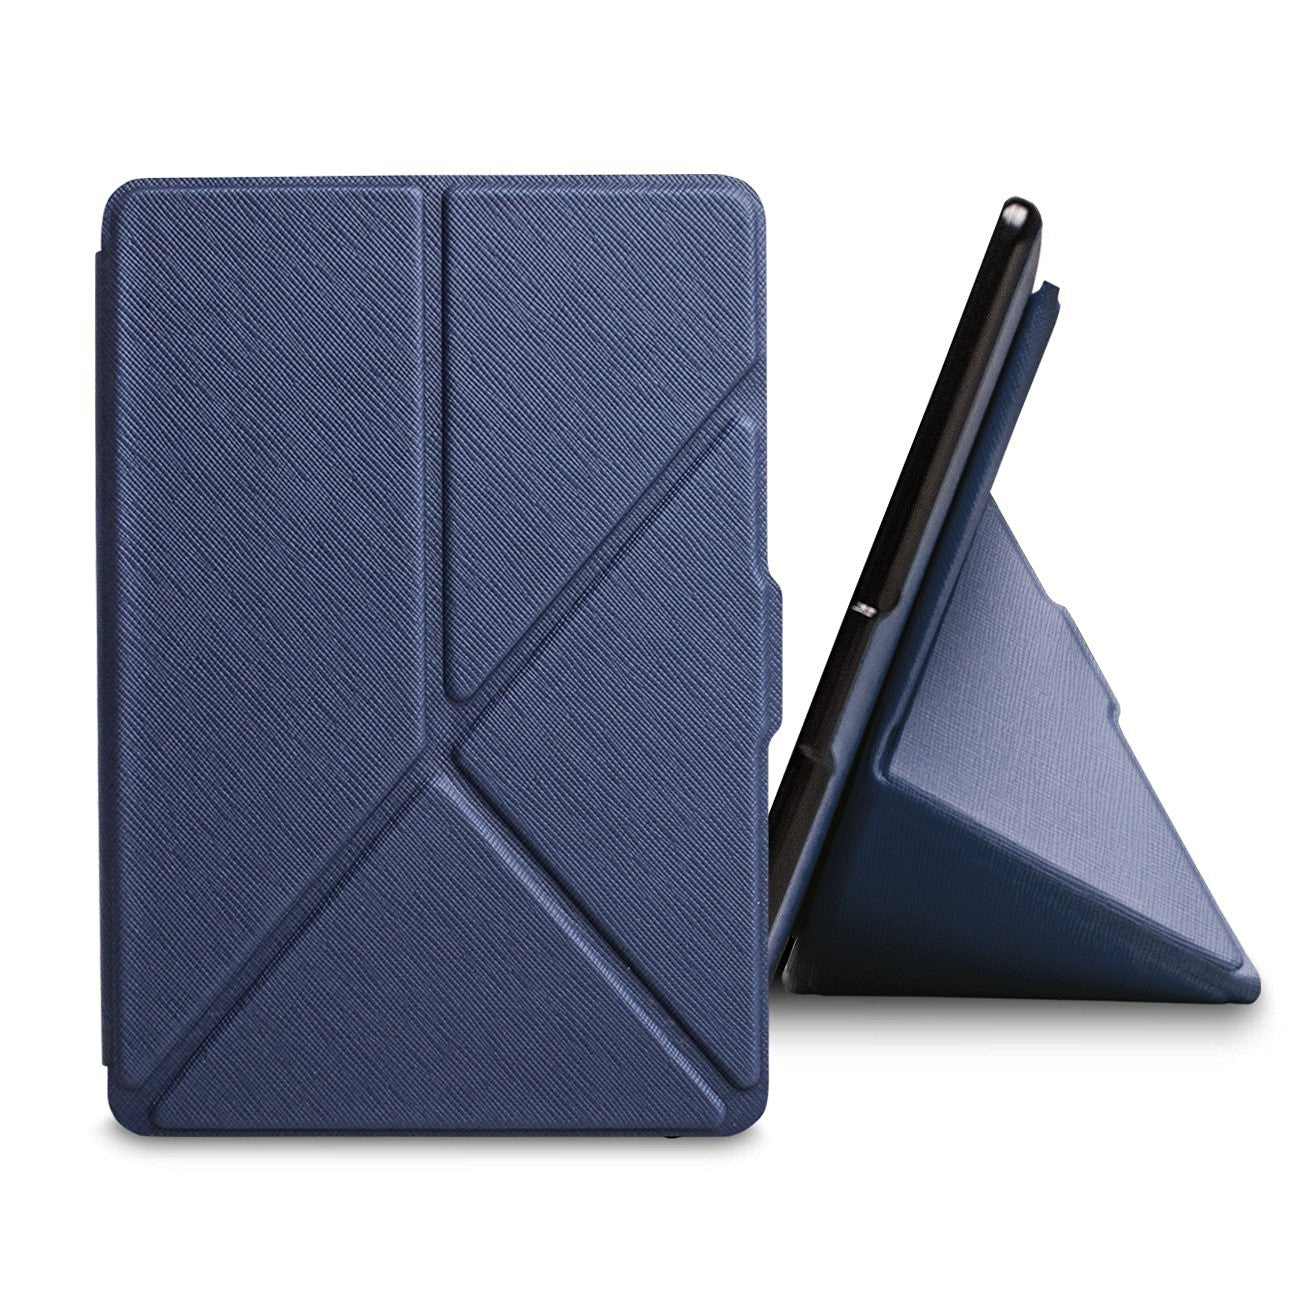 Navy Origami Magnetic PU Leather Case Cover for Amazon Kindle 8th Gen 2016